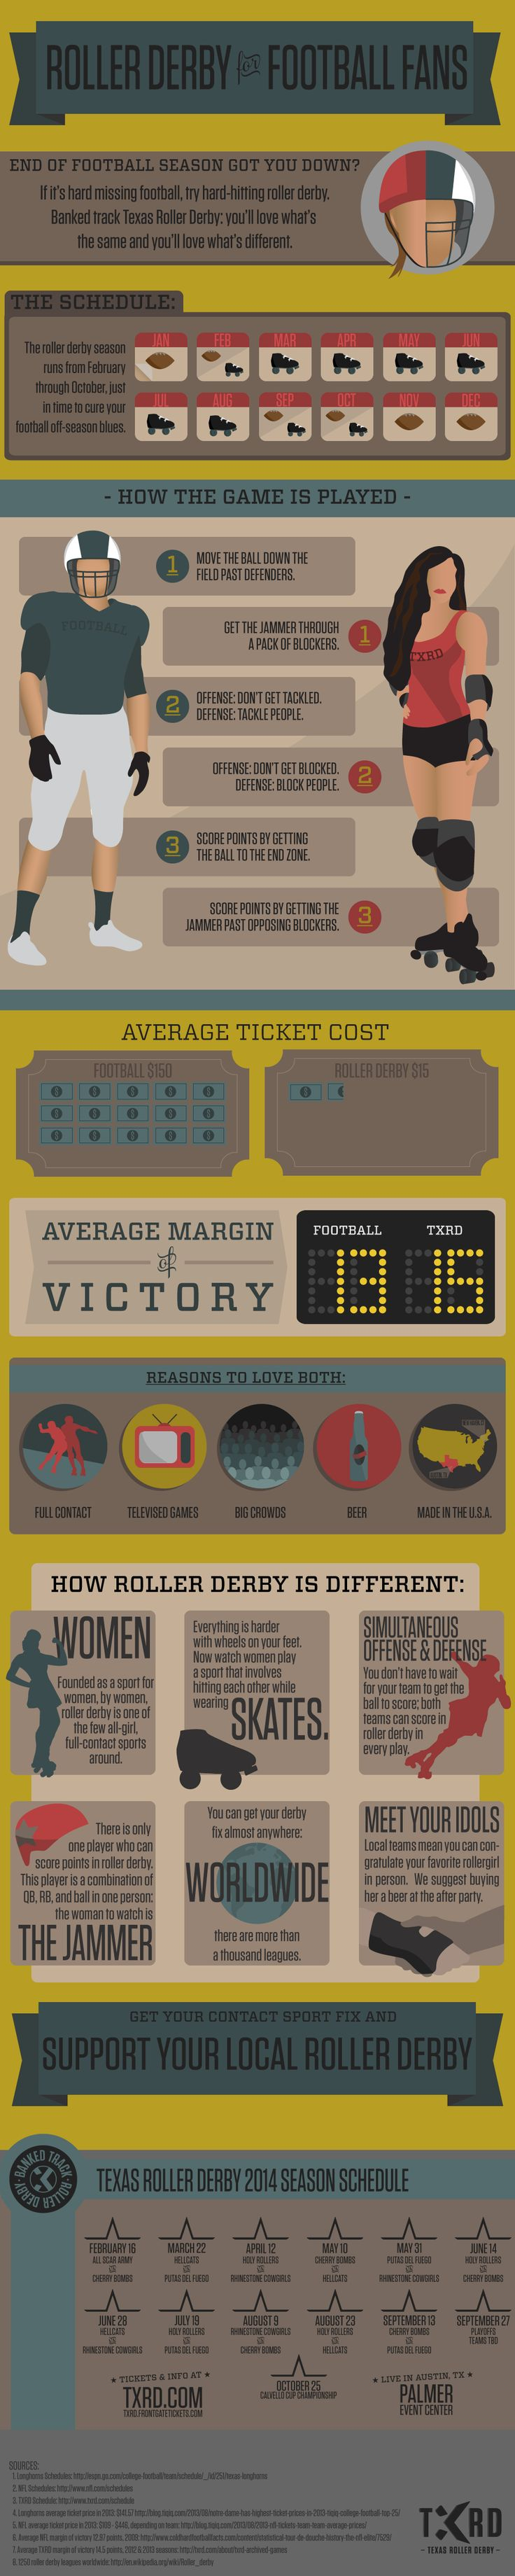 Why football fans should check out roller derby - #Football, #Sports